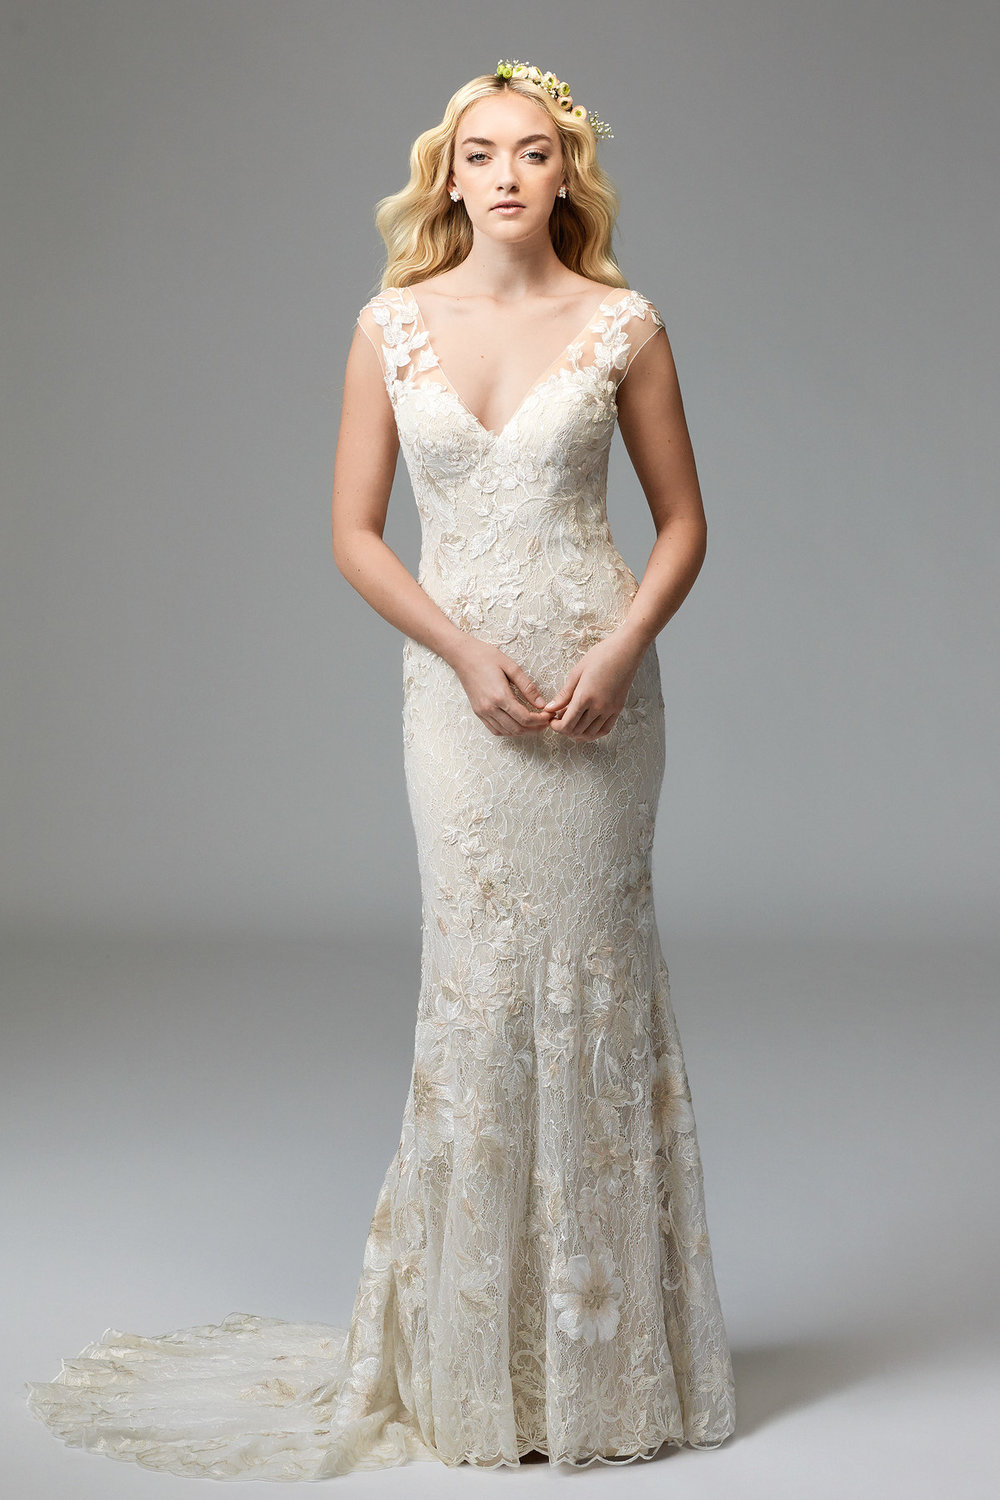 Doyle -  This dress was designed for the whimsical romantic. Doyle's Tillie Chantilly Lace plays backdrop to its dramatic Wildfell Floral Motifs. The front of this fit-and-flare gown features a flattering V-neckline, which is mirrored by a dramatic plunge in the back. Sweep Train.  Colors Available - Ivory, Dusty Pink